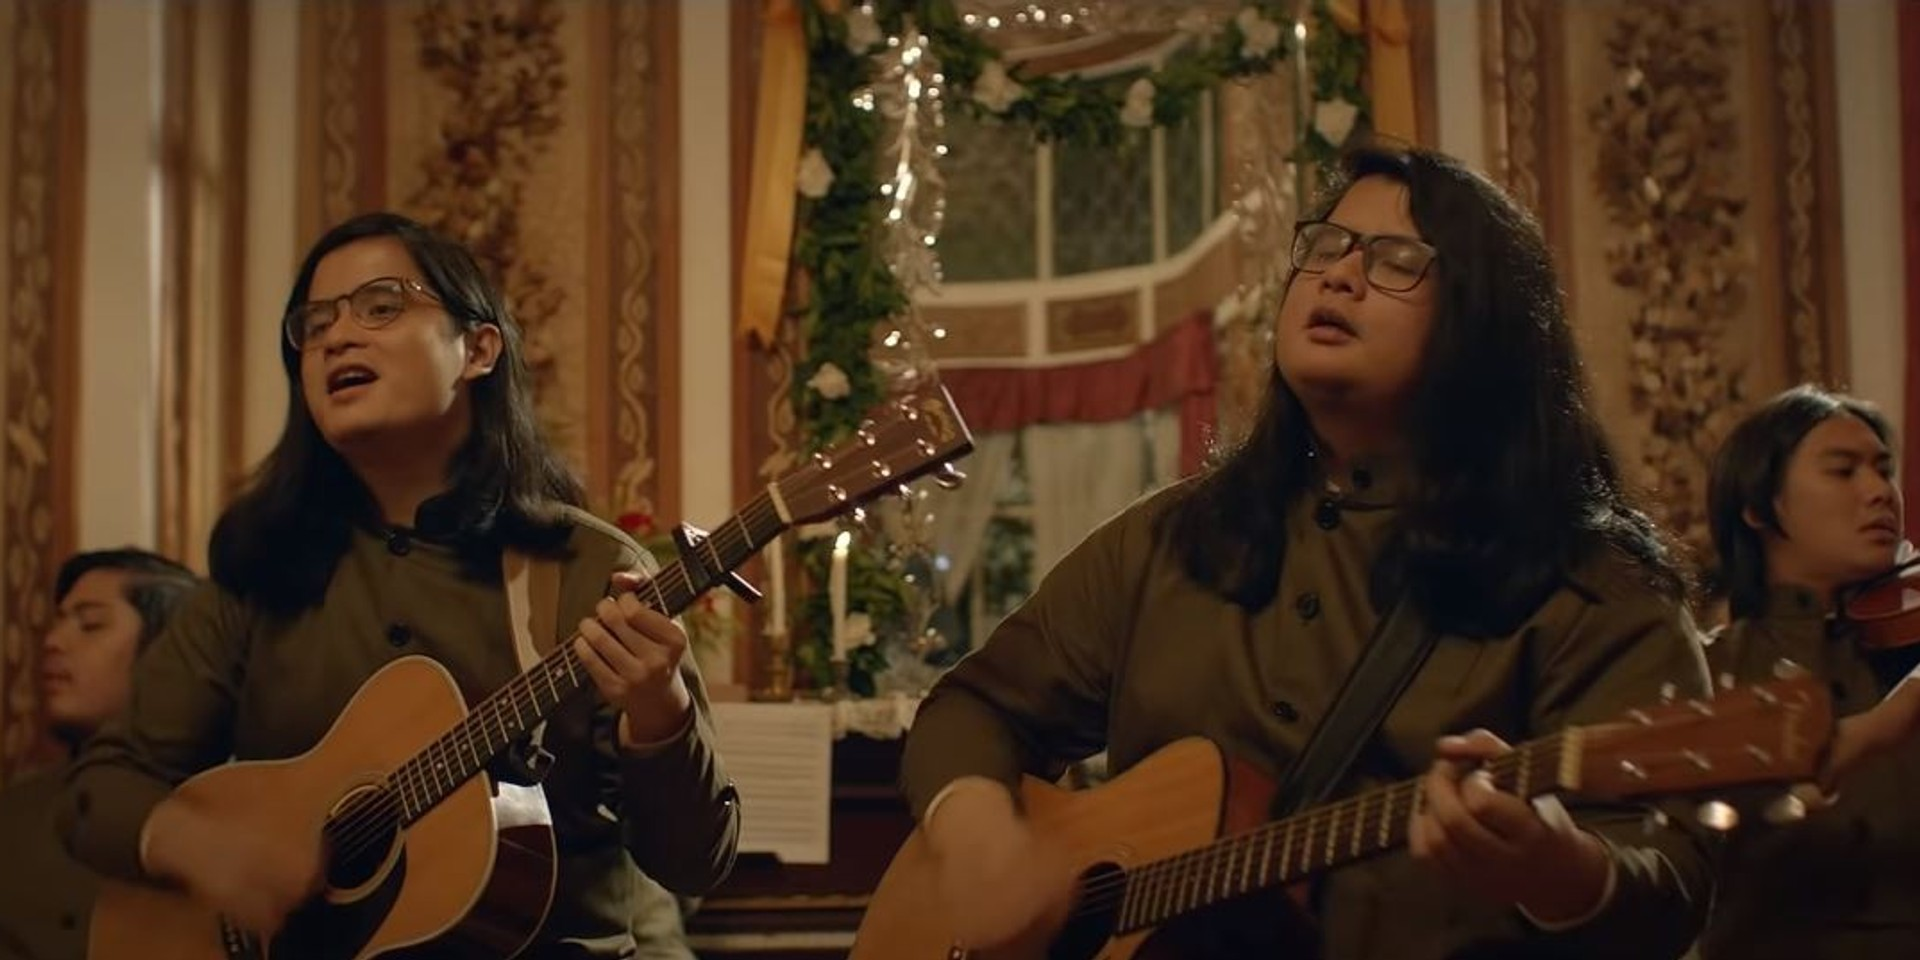 Ben&Ben unveil gorgeous 'Susi' video from Goyo soundtrack – watch